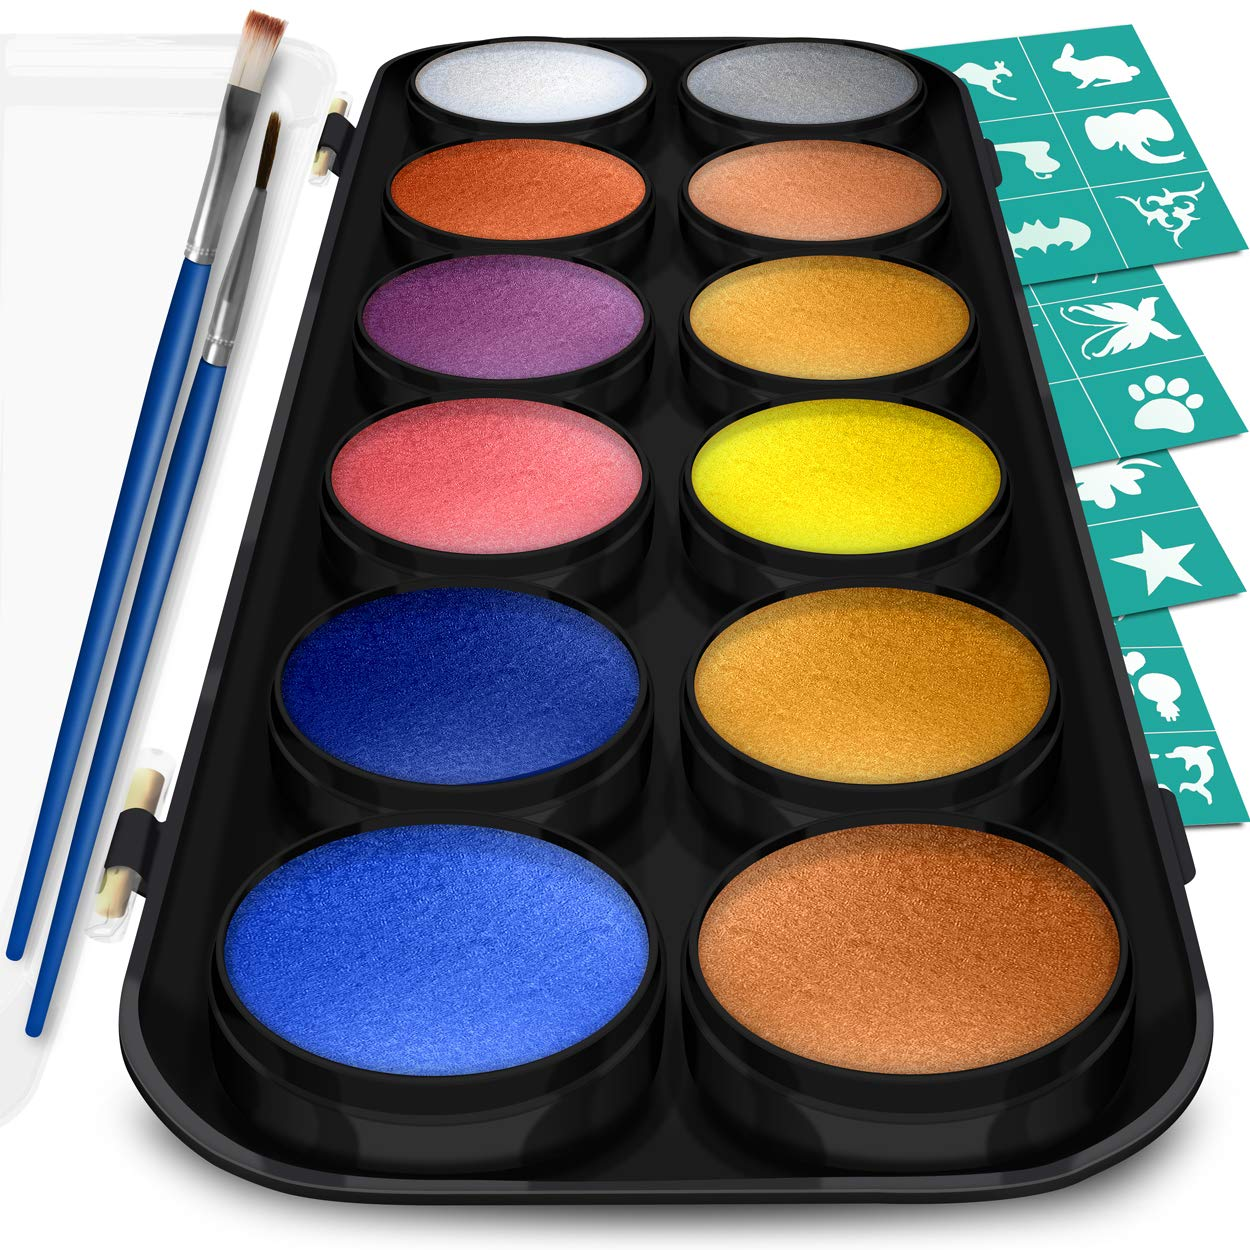 Face and Body Paint Kit, 12 Metallic Colors with Bonus Flat and Detail Paint Brushes, Comes with 30 Design Stencils, Non Toxic, Water Based and Easy On, Easy Off, FDA Compliant Crafts & Colors